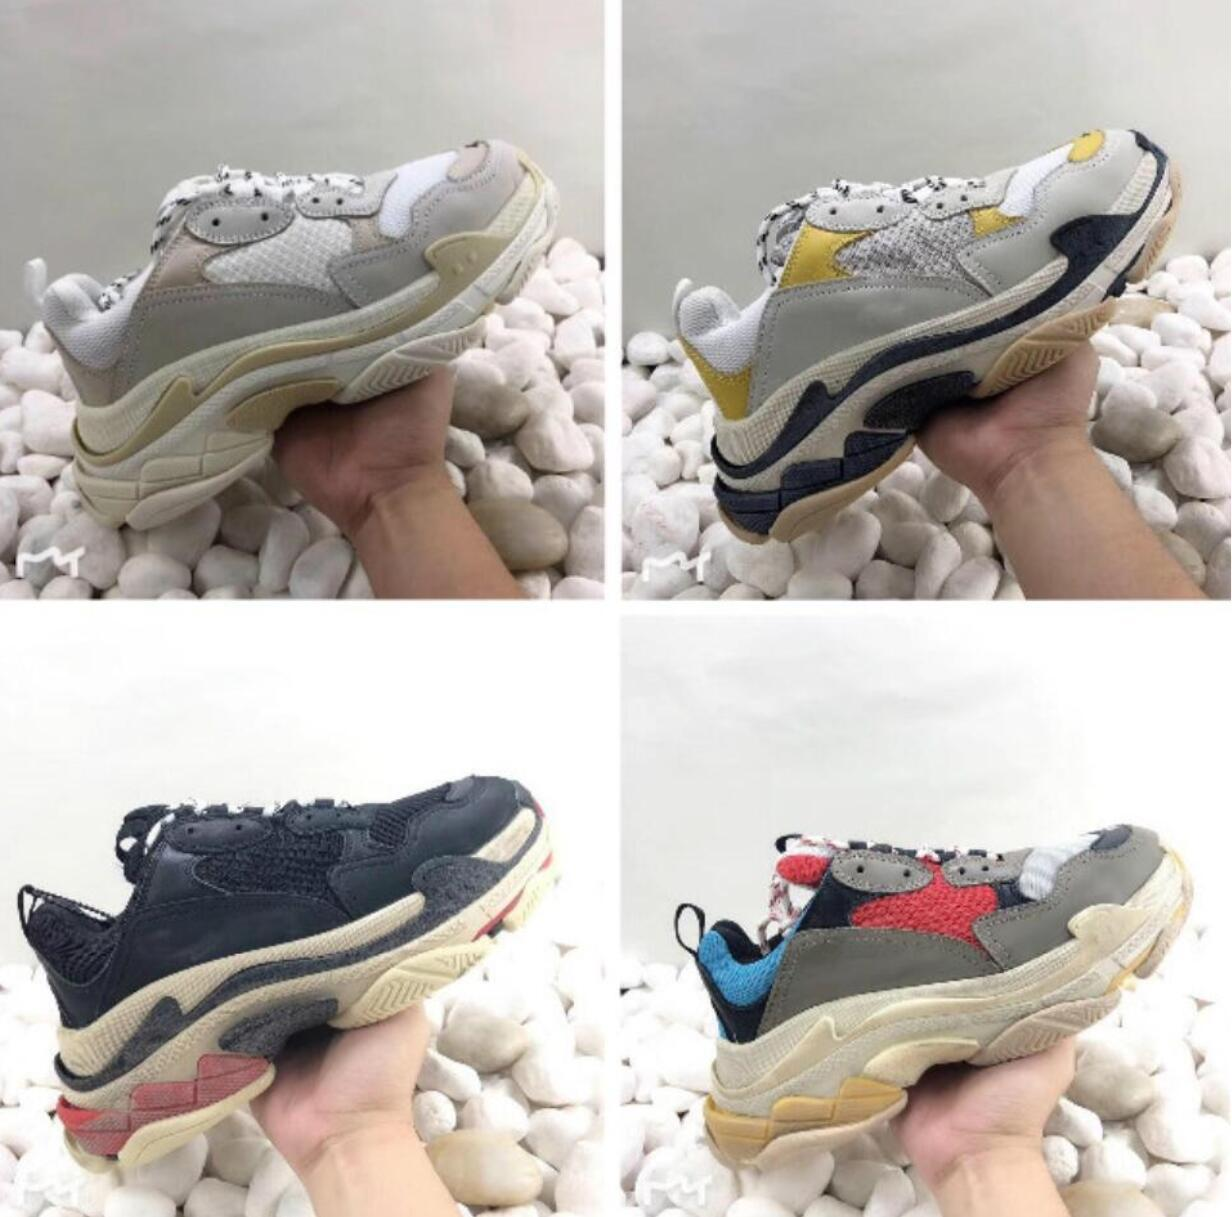 2019 cheap fTriple-S Designer cuteCasual Shoes Dad Shoe Triple S Sneakers for Men Women Unveils Trainers Leisure Retro Training Old Grandpa